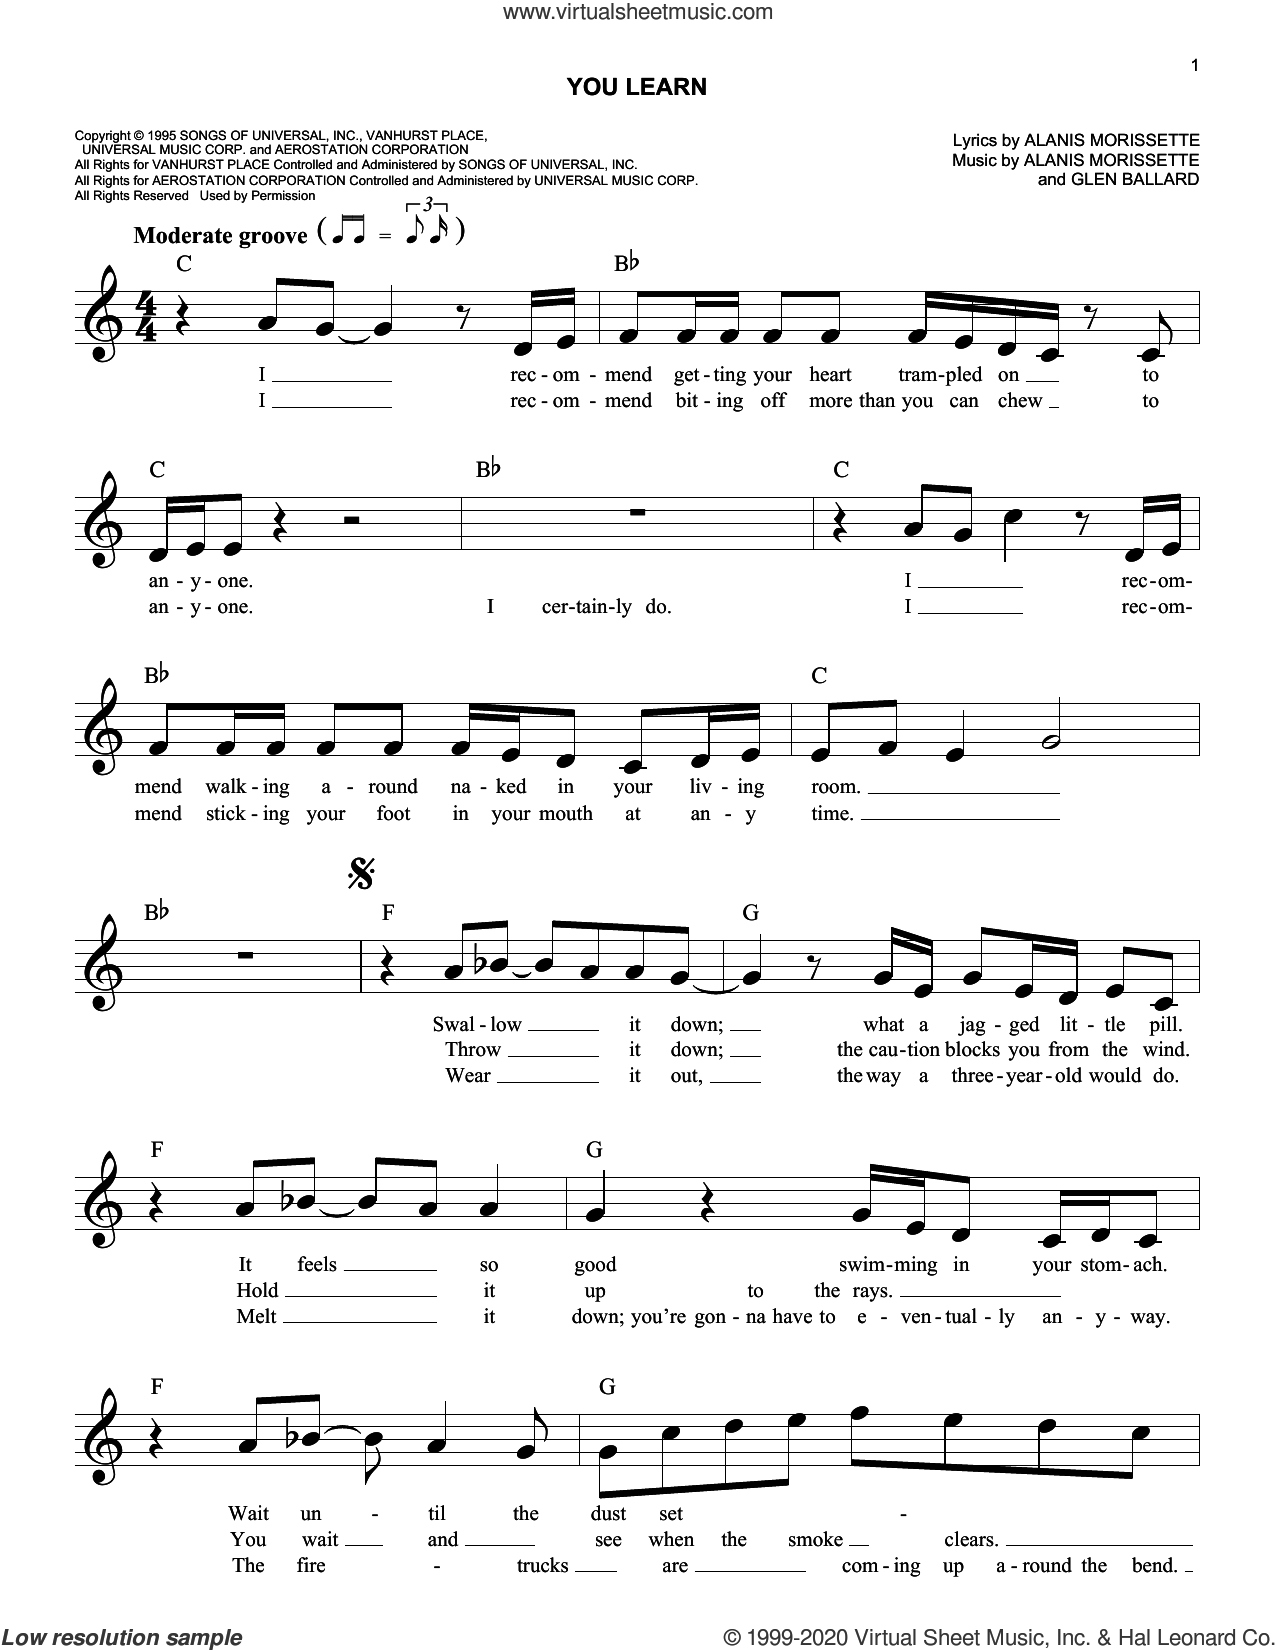 You Learn sheet music for voice and other instruments (fake book) by Alanis Morissette and Glen Ballard, intermediate skill level